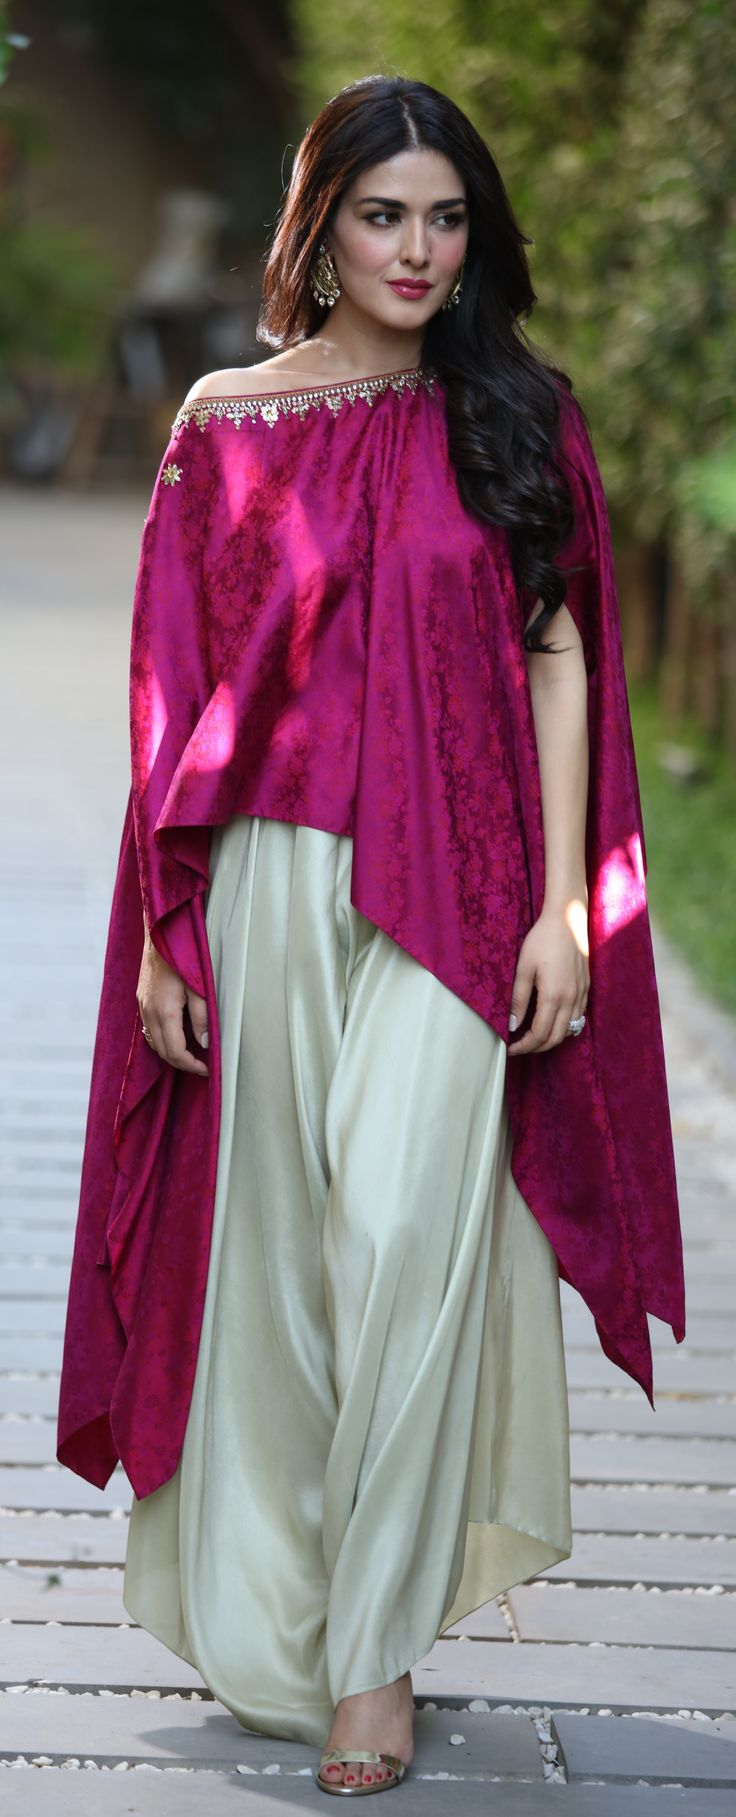 Pakistani Fashion, model Natasha Khalid